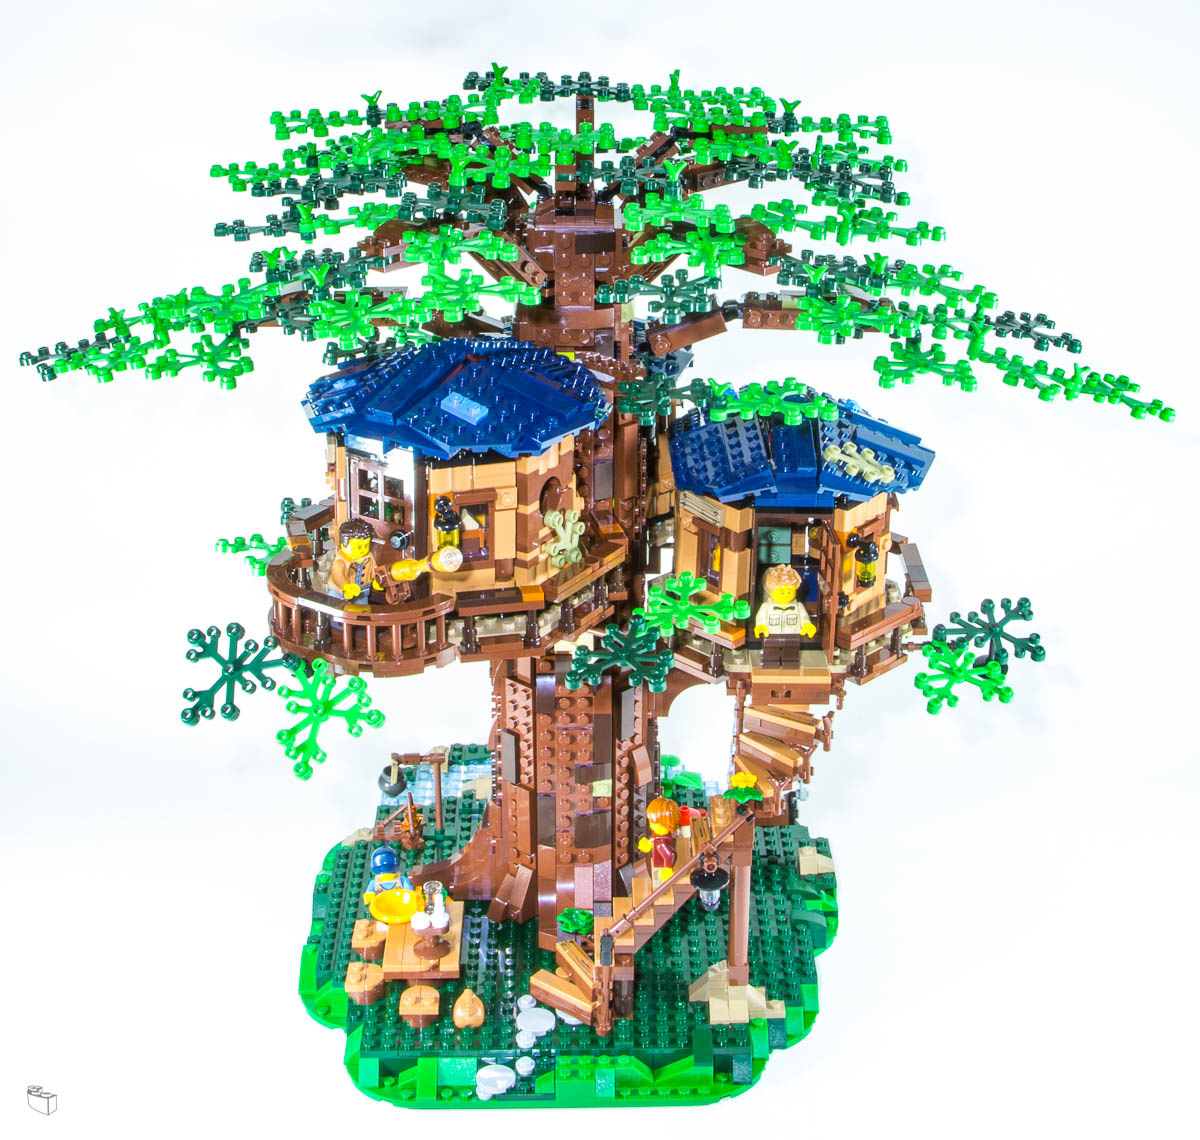 Lego Ideas Tree House 21318 Review A Tale Of Castaways The Rambling Brick